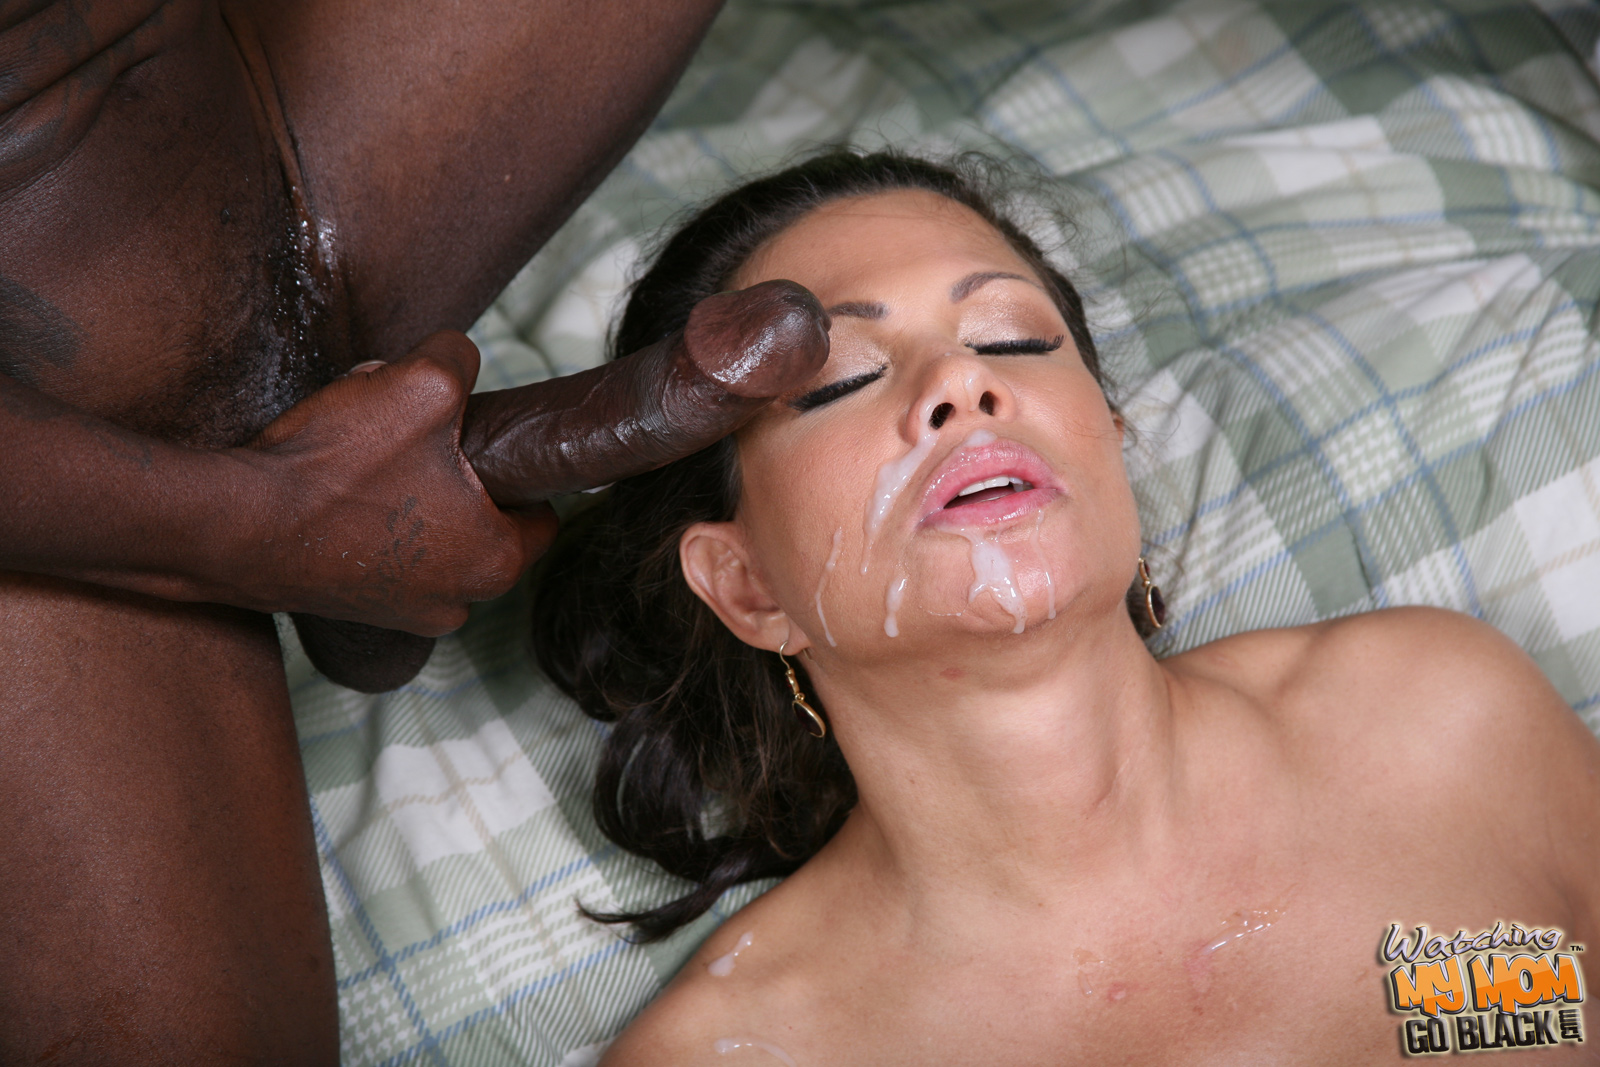 Amazing free terri weigel facial cumshots that